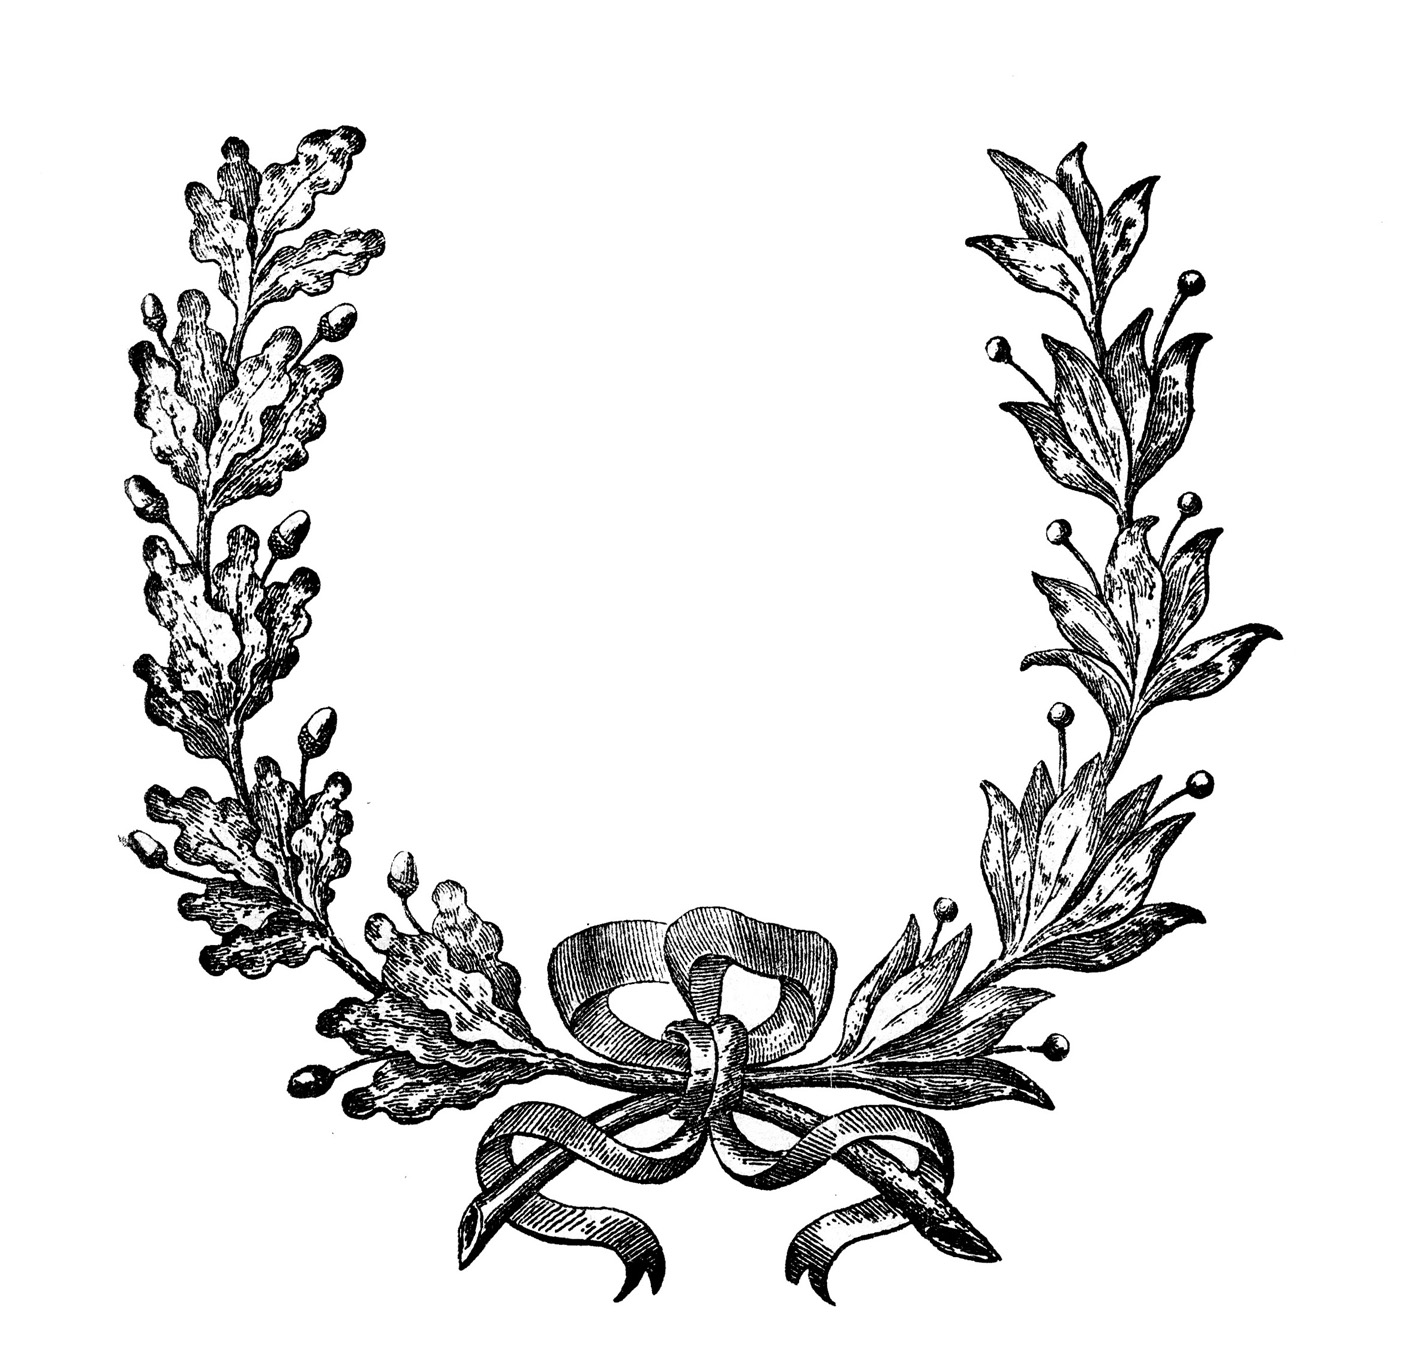 1420x1349 Vintage Clip Art French Wreath Engraving The Graphics Fairy Image